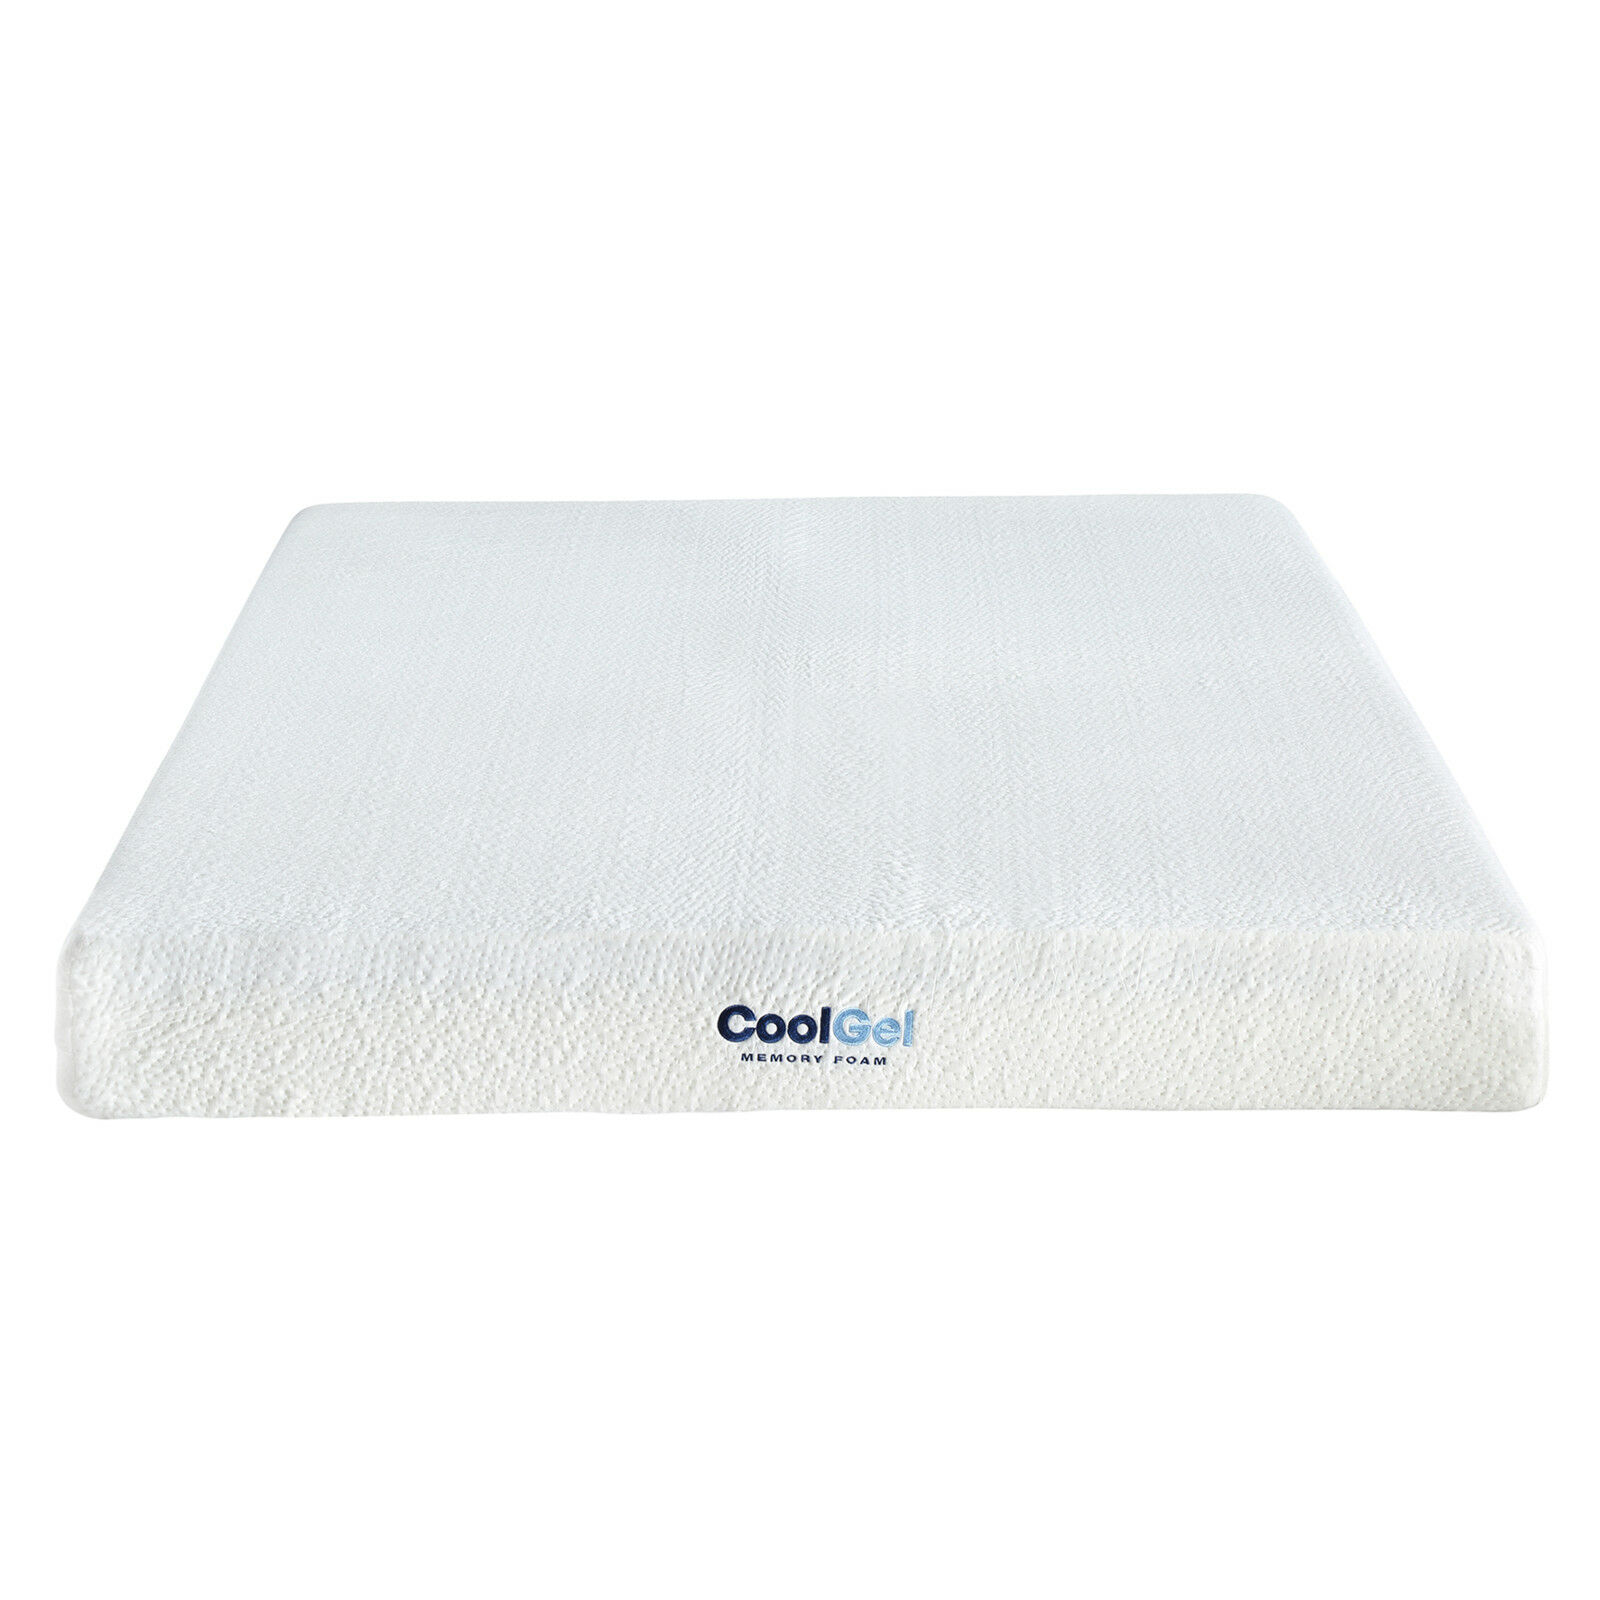 Cool Gel Ventilated Gel Memory Foam 8 Inch Mattress Bed Slee